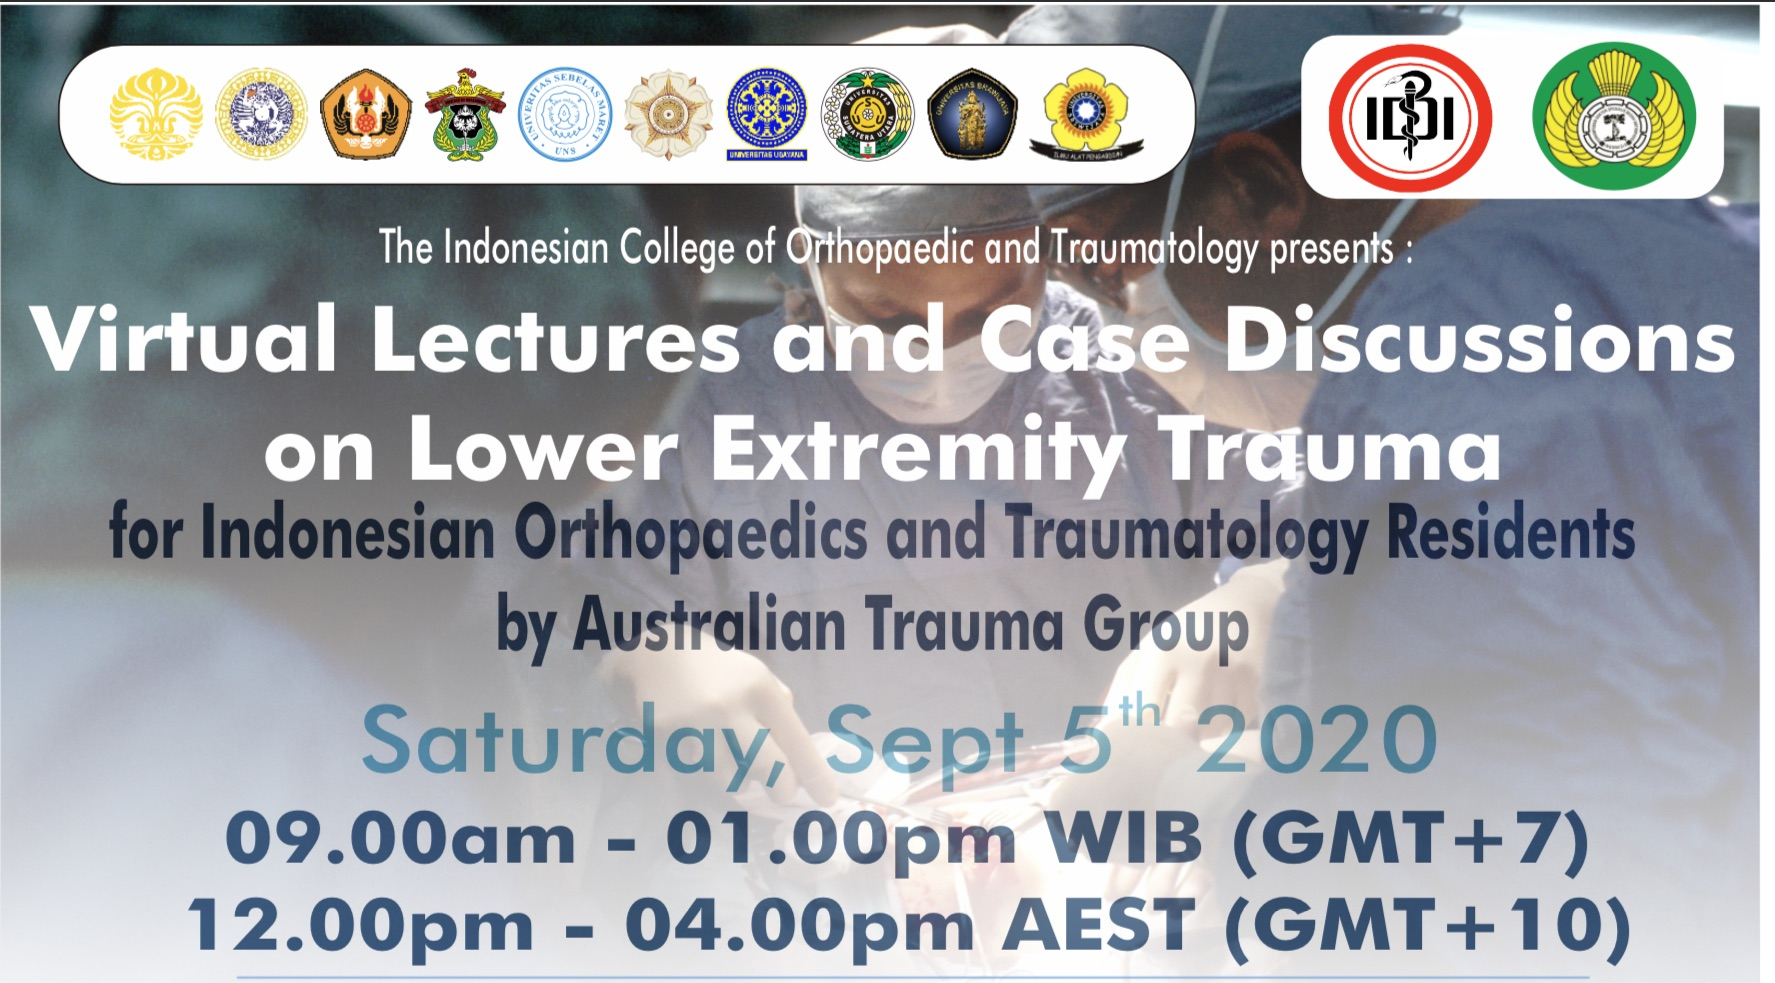 Virtual Lectures and Case Discussions on Lower Extremity Trauma by Australian Trauma Group